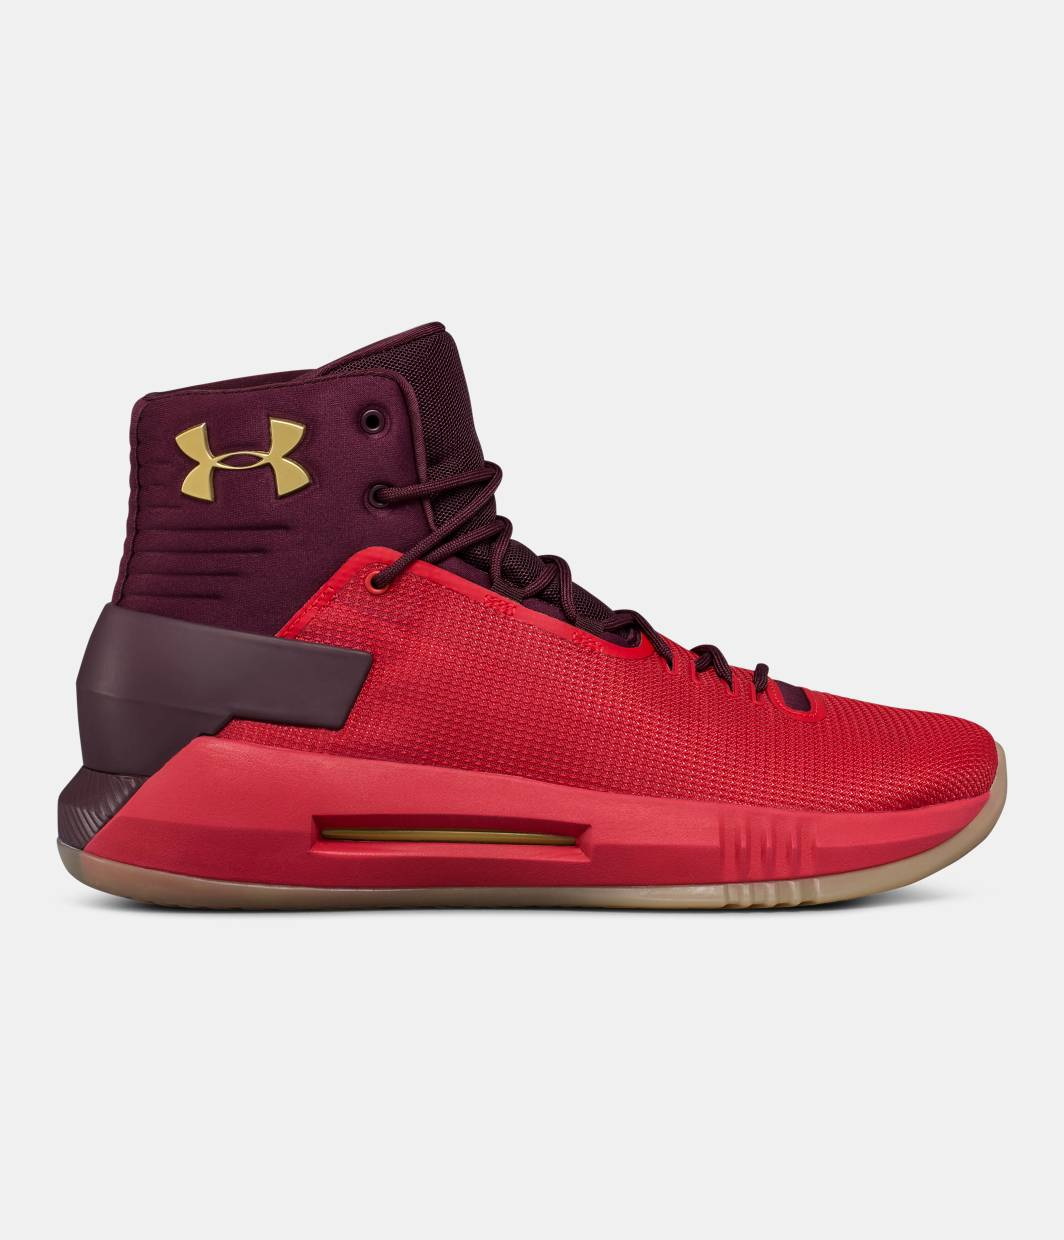 365472abd96 canada under armour clutchfit drive ii black yellownike salenike shoes for  cheap b5e91 2f4fb  coupon for mens ua drive 4 basketball shoes under armour  us ...